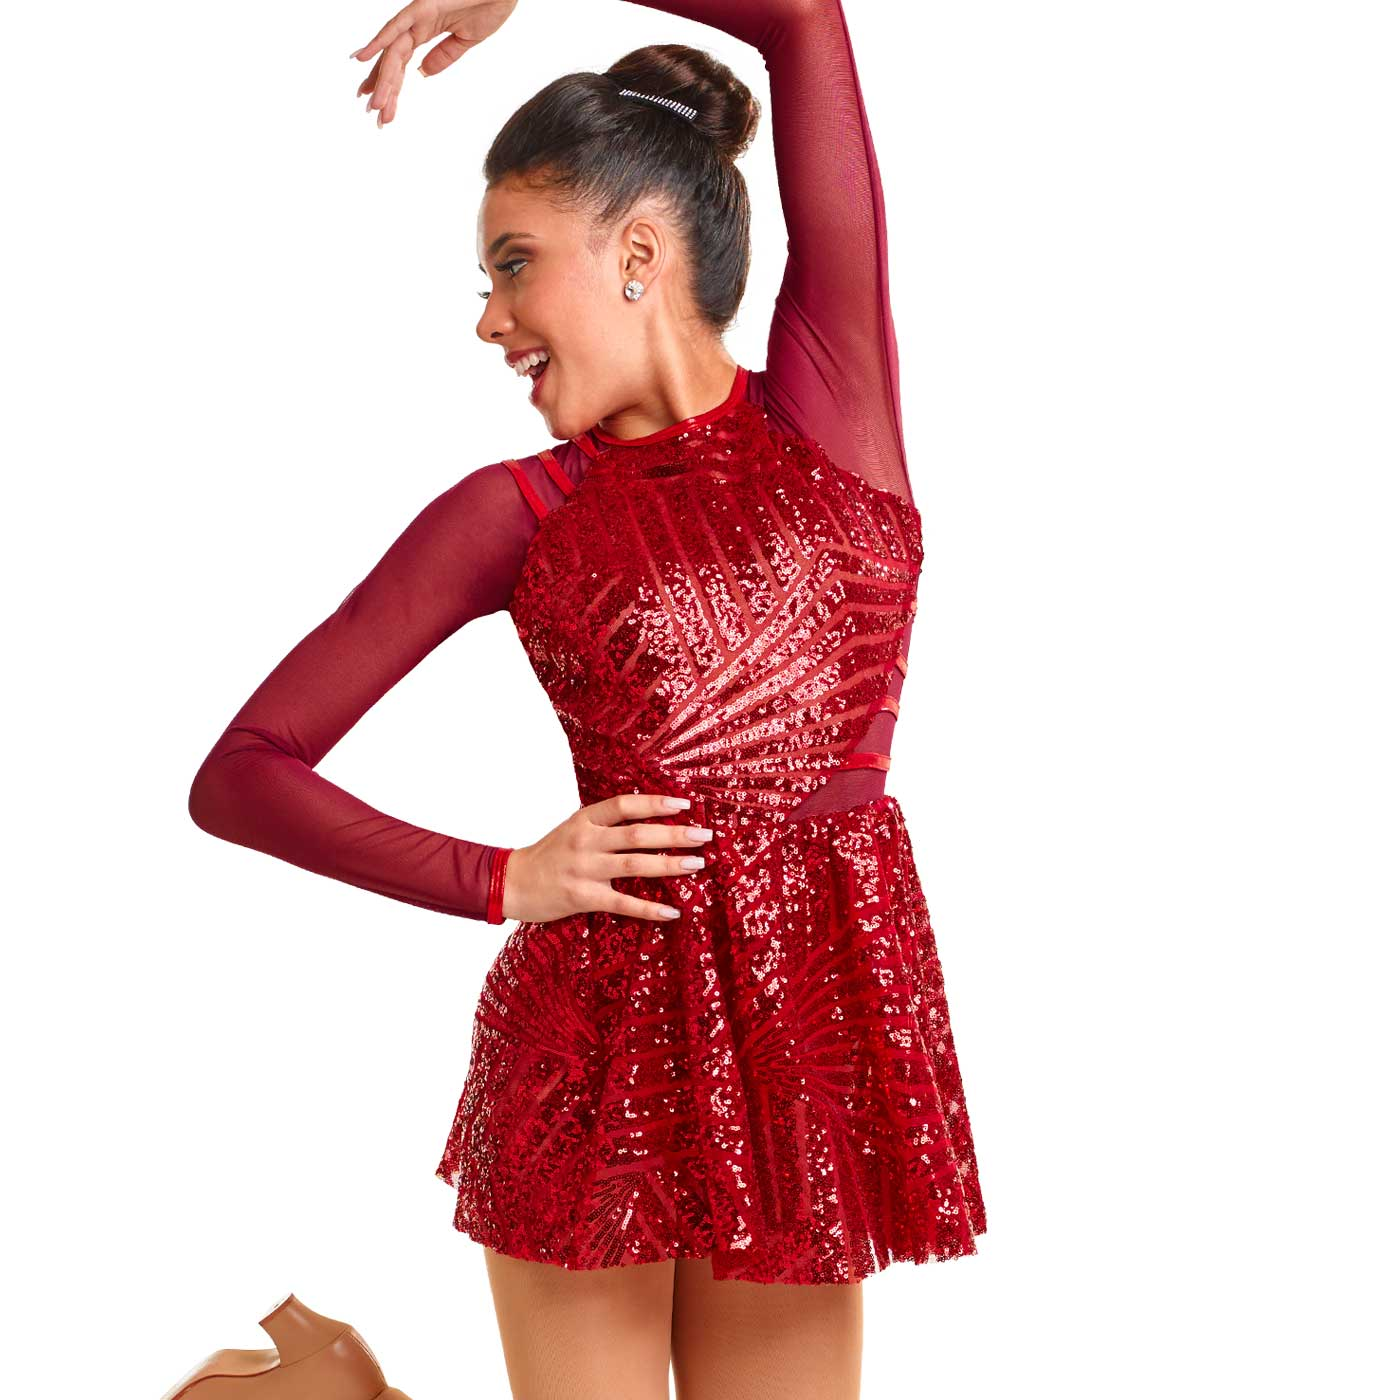 Image result for j5150 red hot call costumes